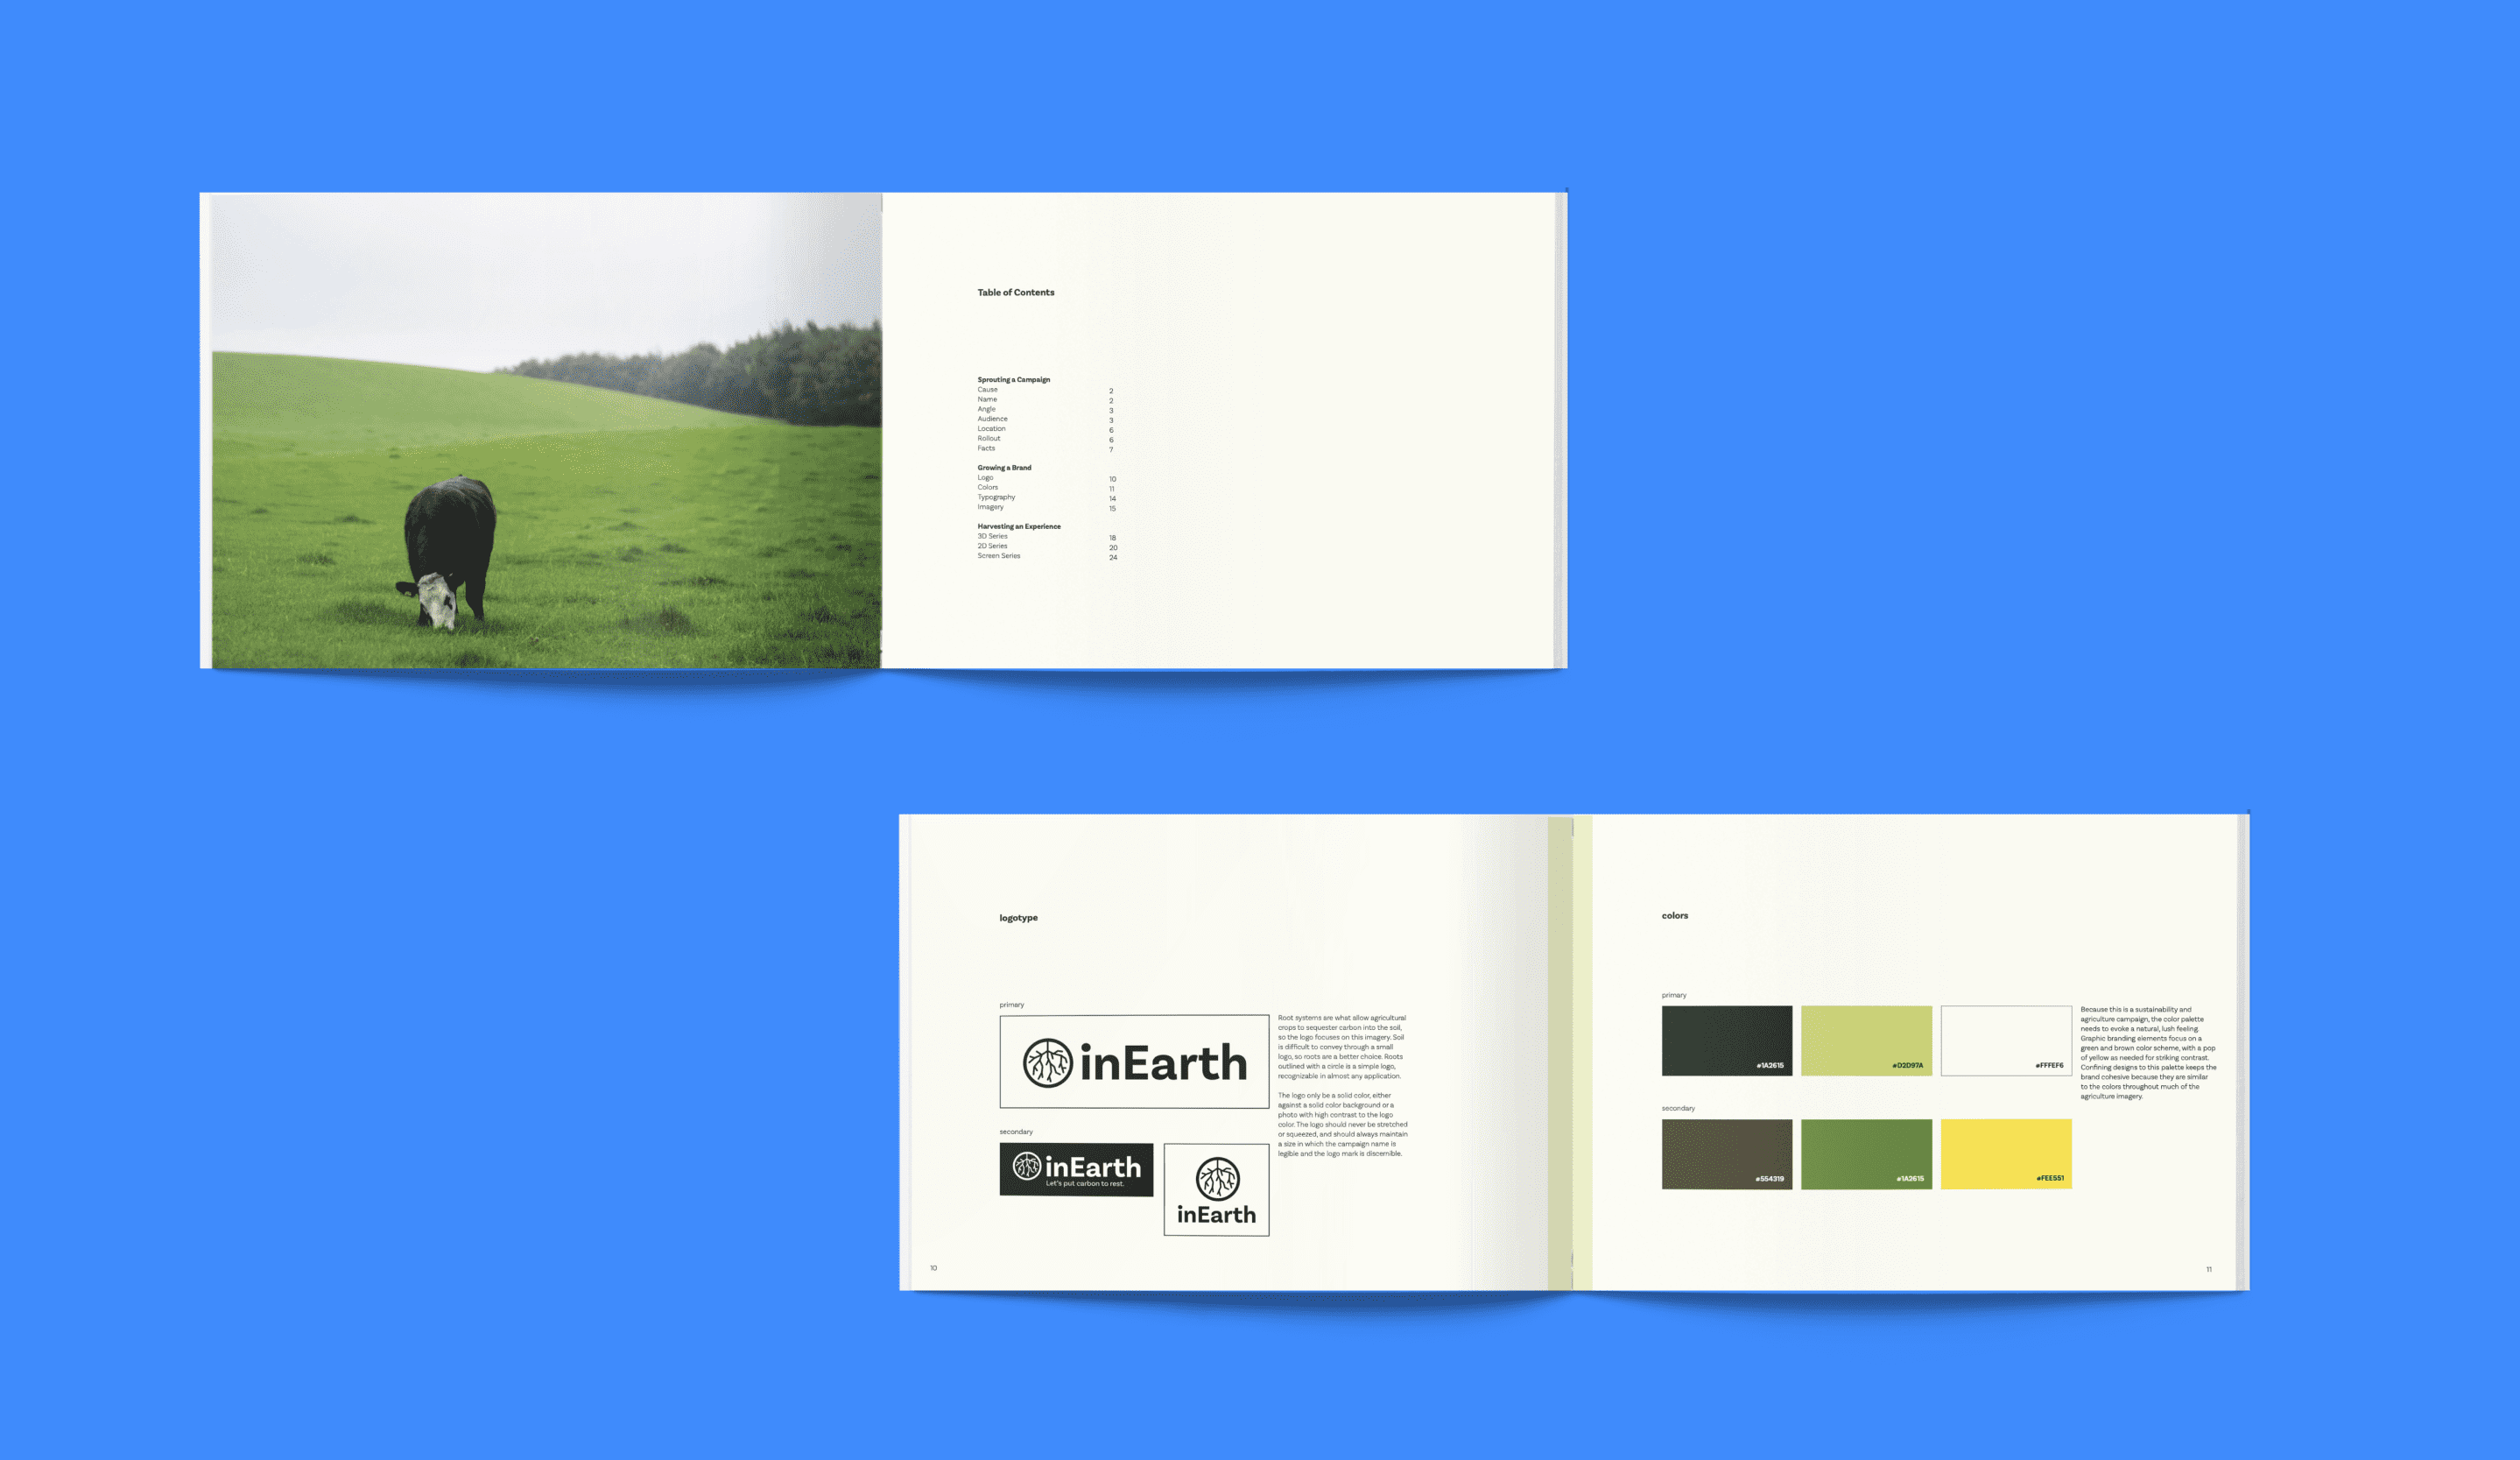 inEarth brand book mockup on blue background